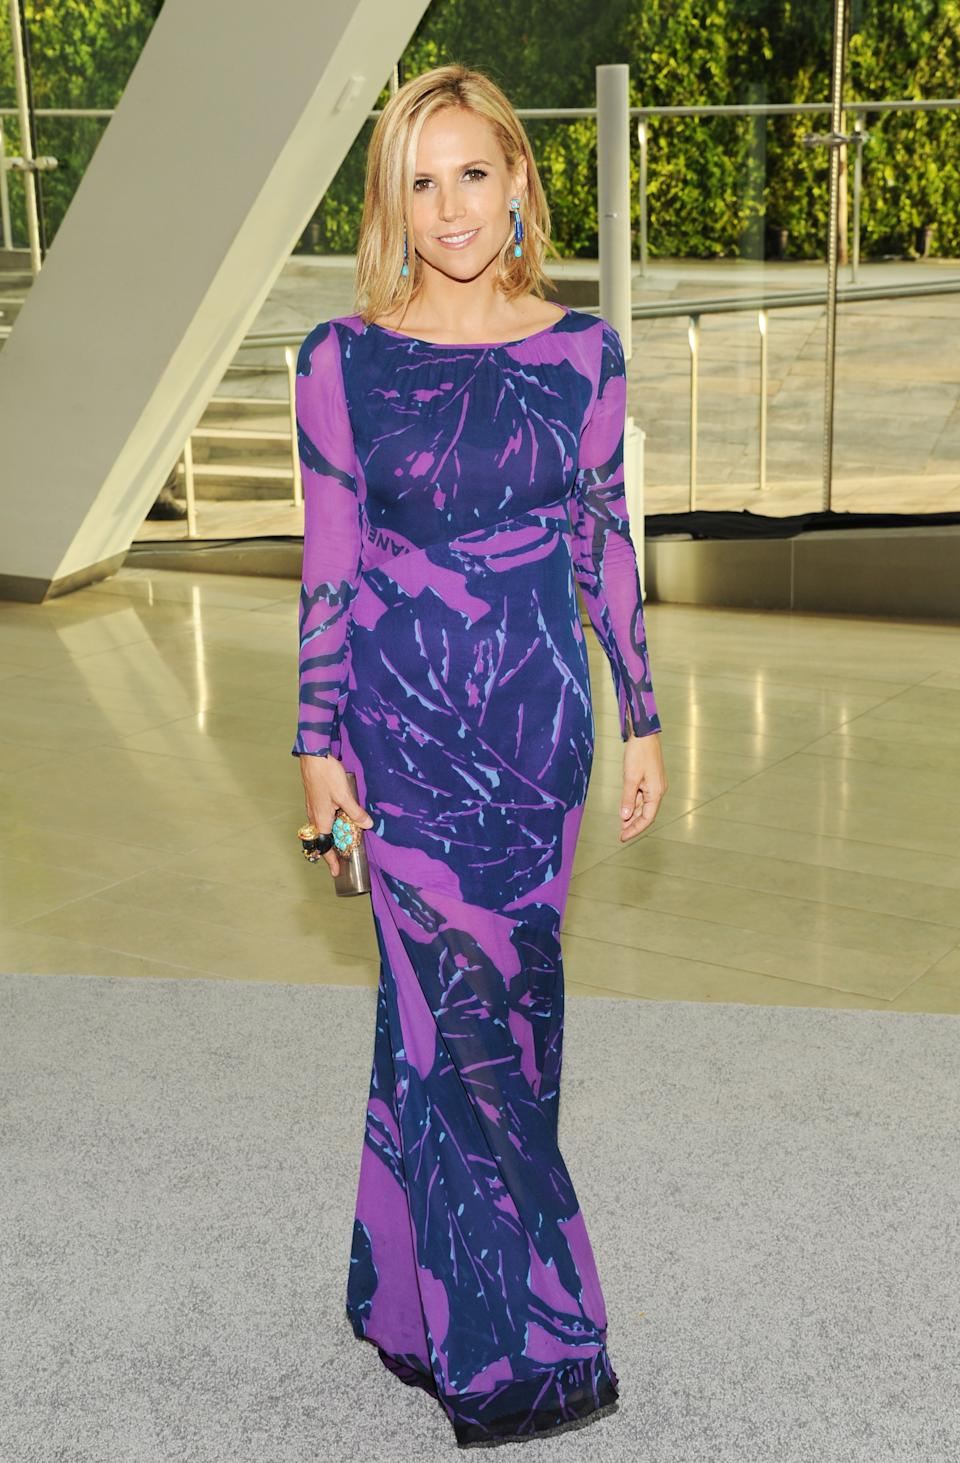 Designer Tory Burch attends the 2013 CFDA Fashion Awards at Alice Tully Hall on Monday, June 3, 2013 in New York. (Photo by Evan Agostini/Invision/AP)